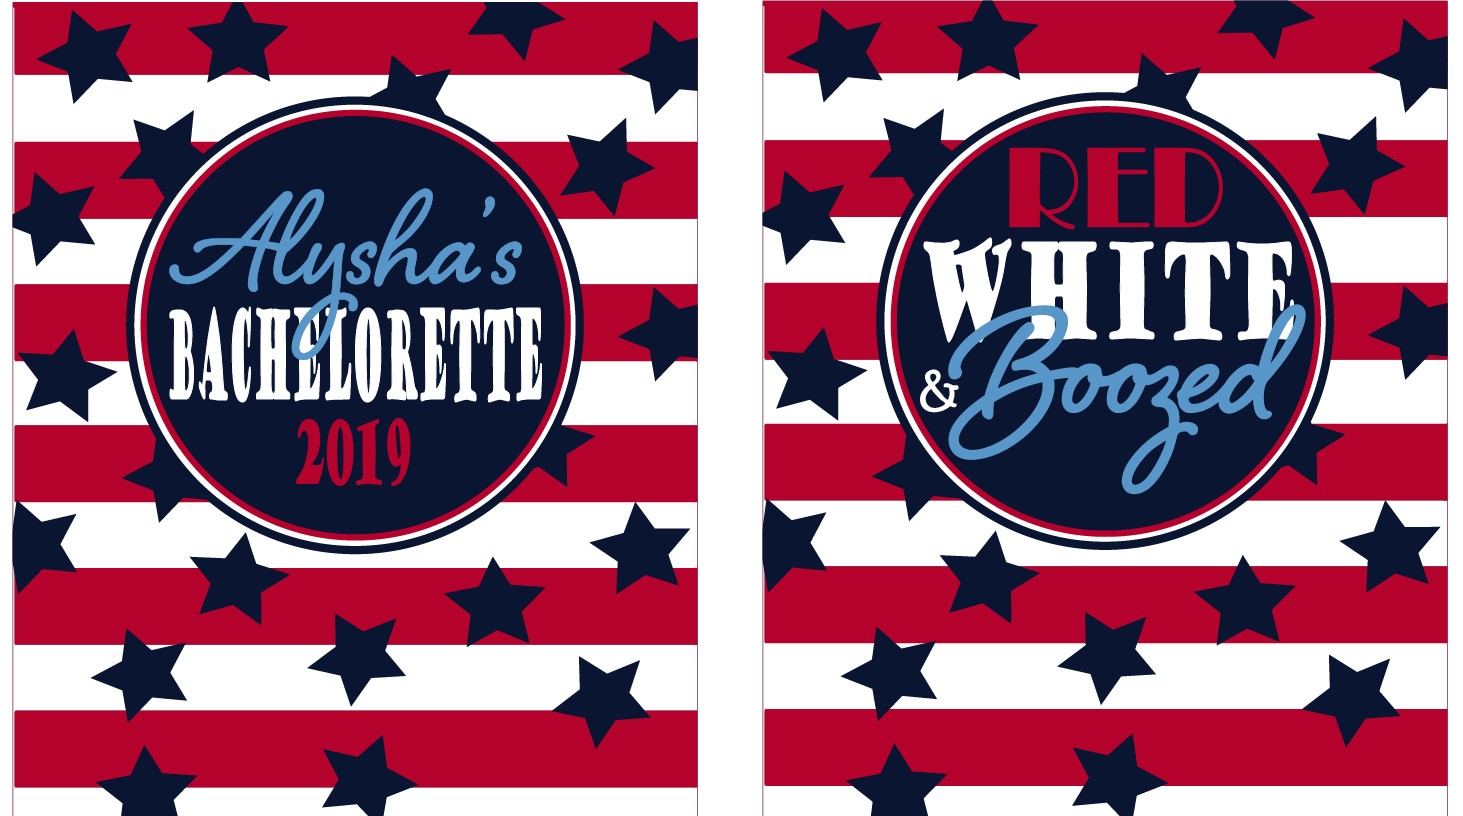 Custom Fourth Of July KOOZIES ® - Red White and Boozed - Personalized Can/Bottle Coolers - 4th of July - Patriotic Koozies